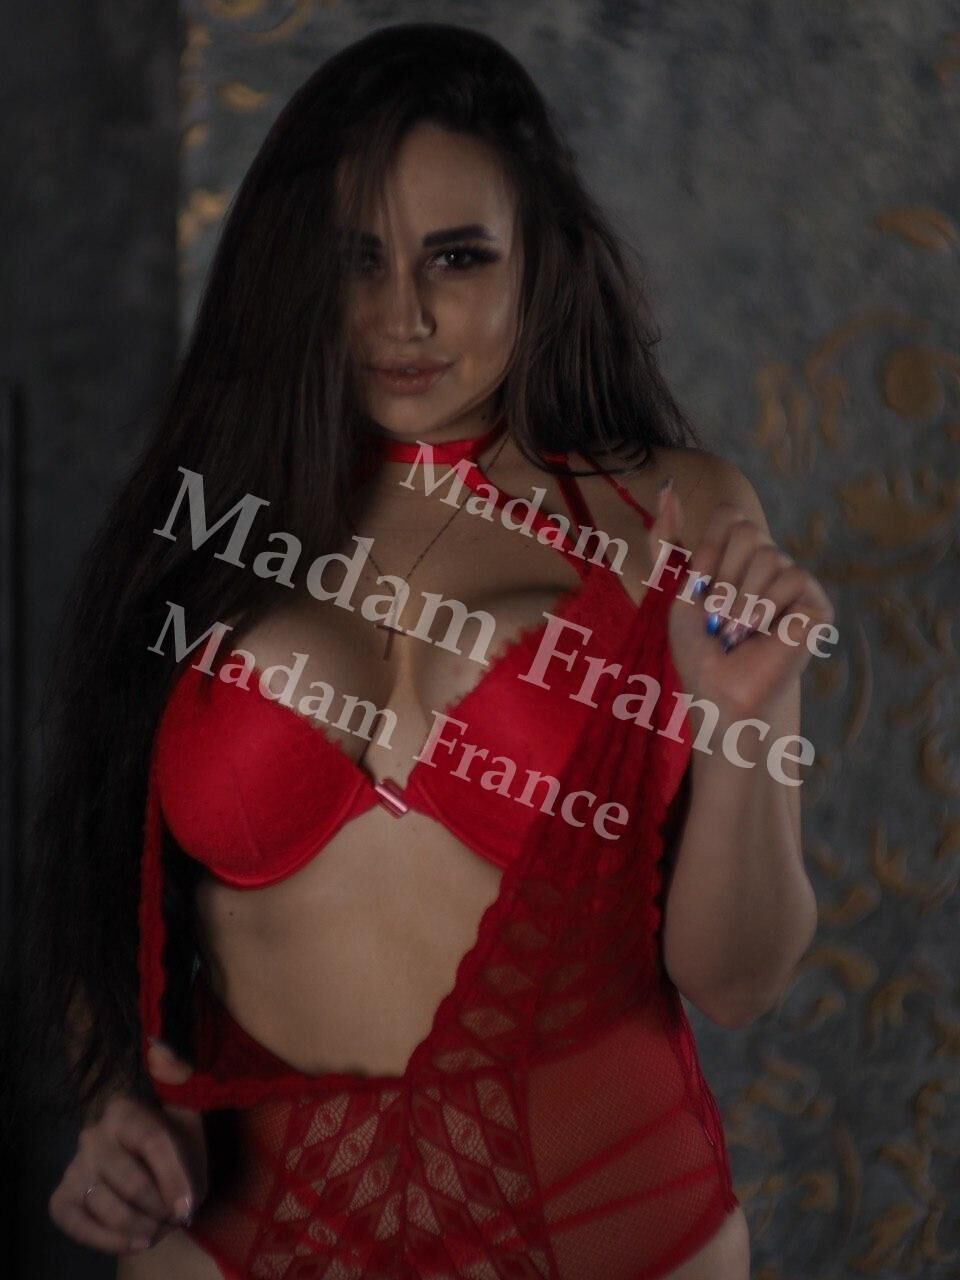 Jane model on Madam France escort service